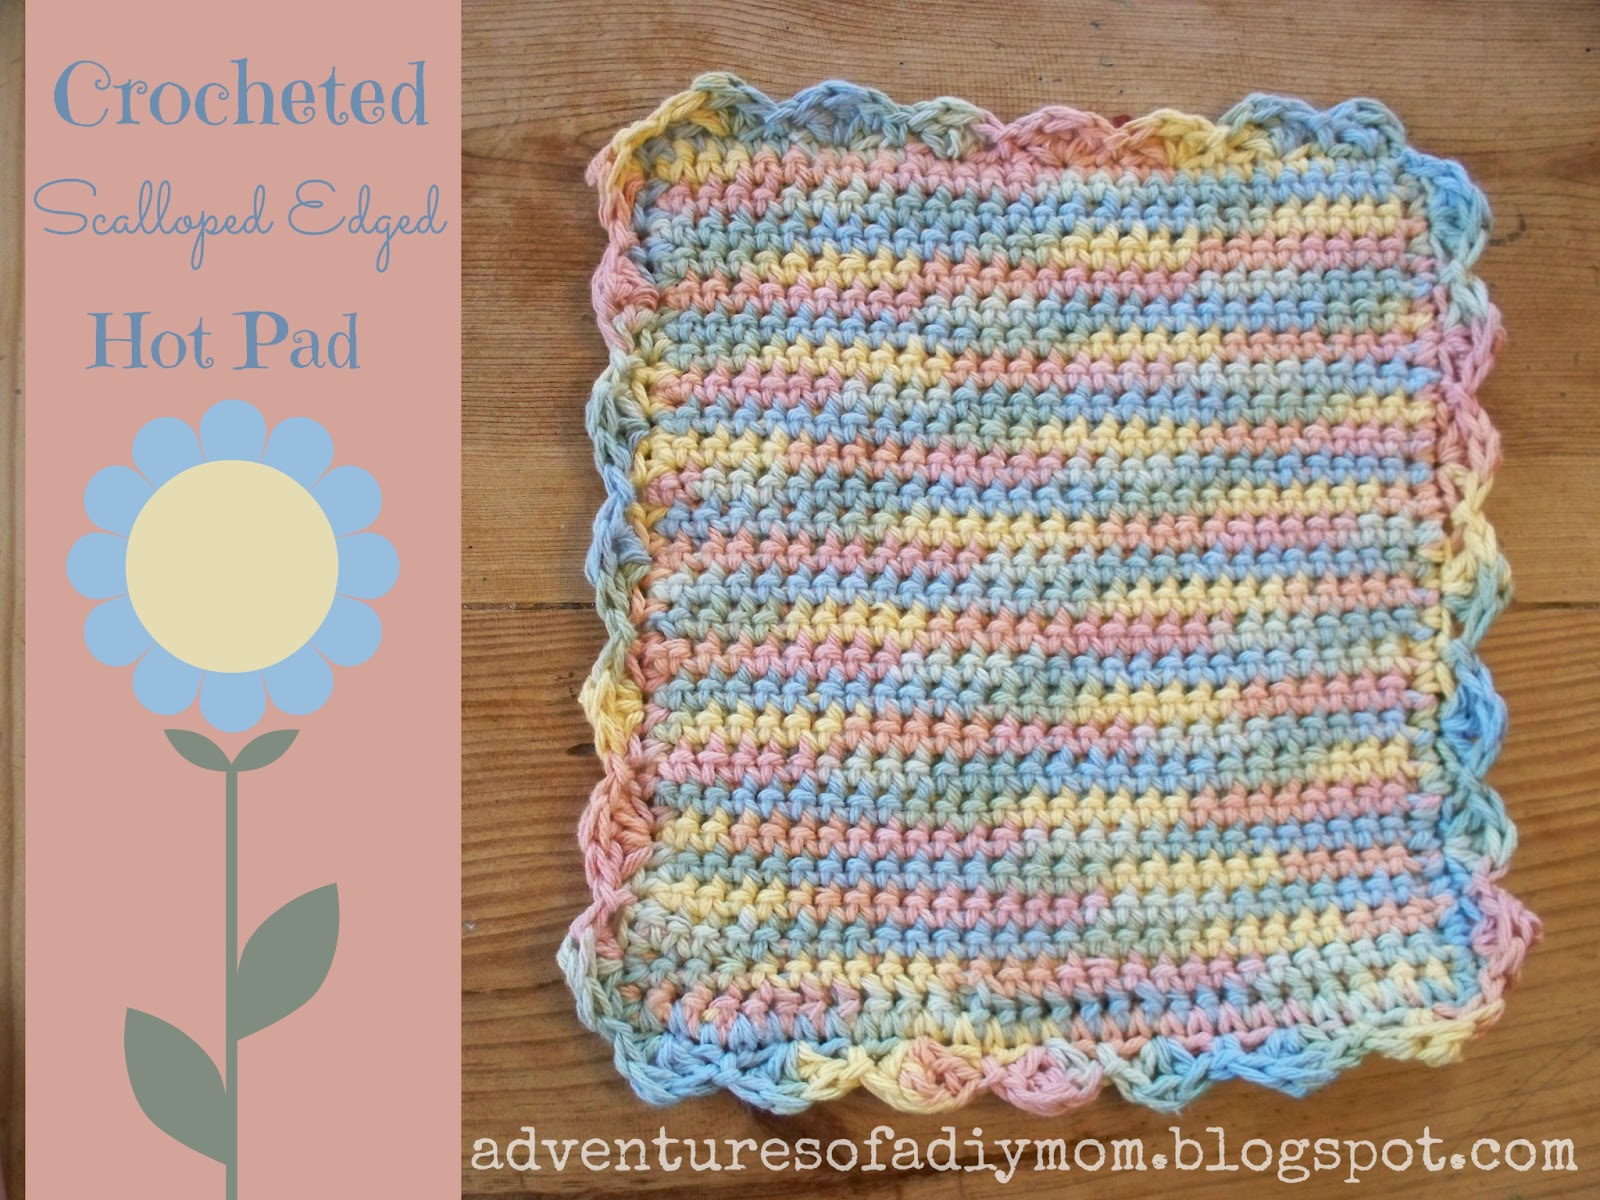 Crochet Patterns Hot Pads : ... of the steps. I started a mini hot pad to show you the process